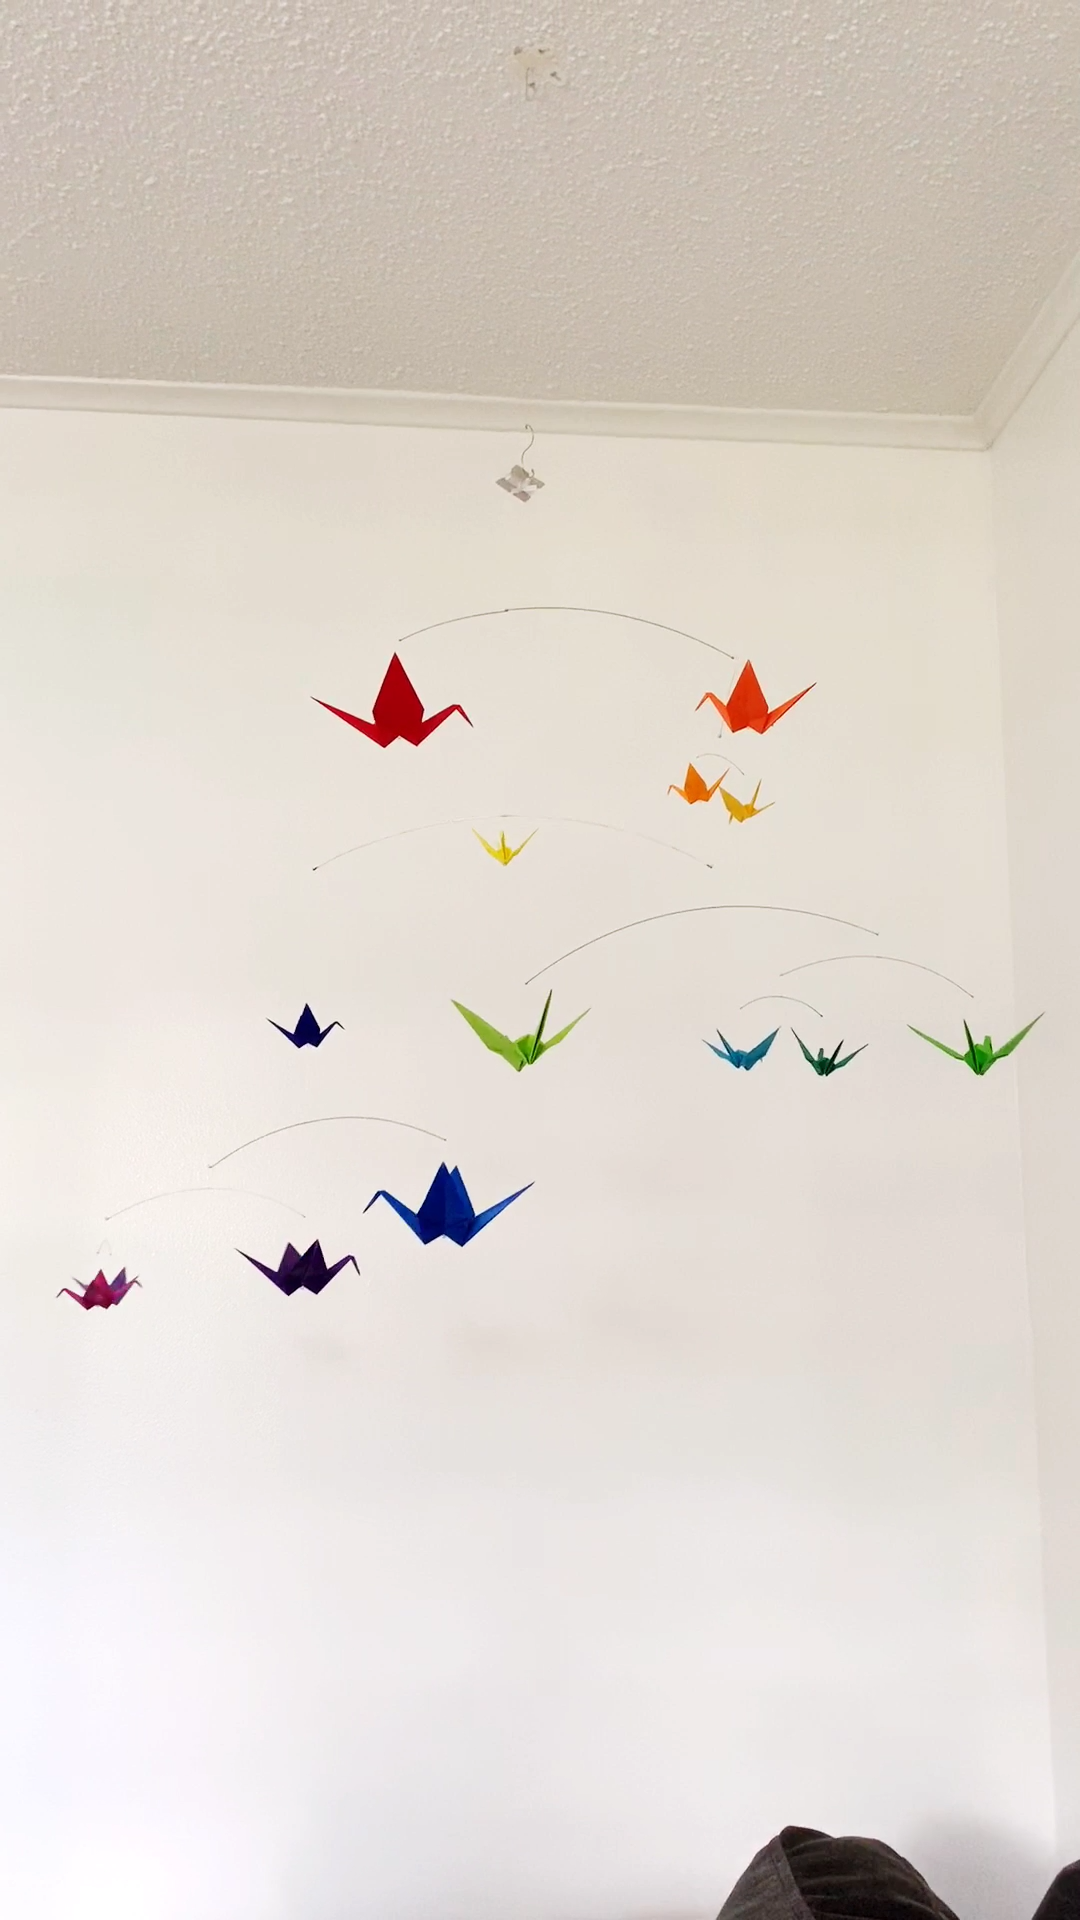 Rainbow Origami Paper Crane Mobile -  Handmade Origami Mobile by The Timeless Crane. baby boy nursery, baby girl nursery, baby room art,  - #crane #decorationdiy #diyDreamhouse #diyhomepictures #diykidroomideas #mobile #origami #paper #rainbow #simplehomediy